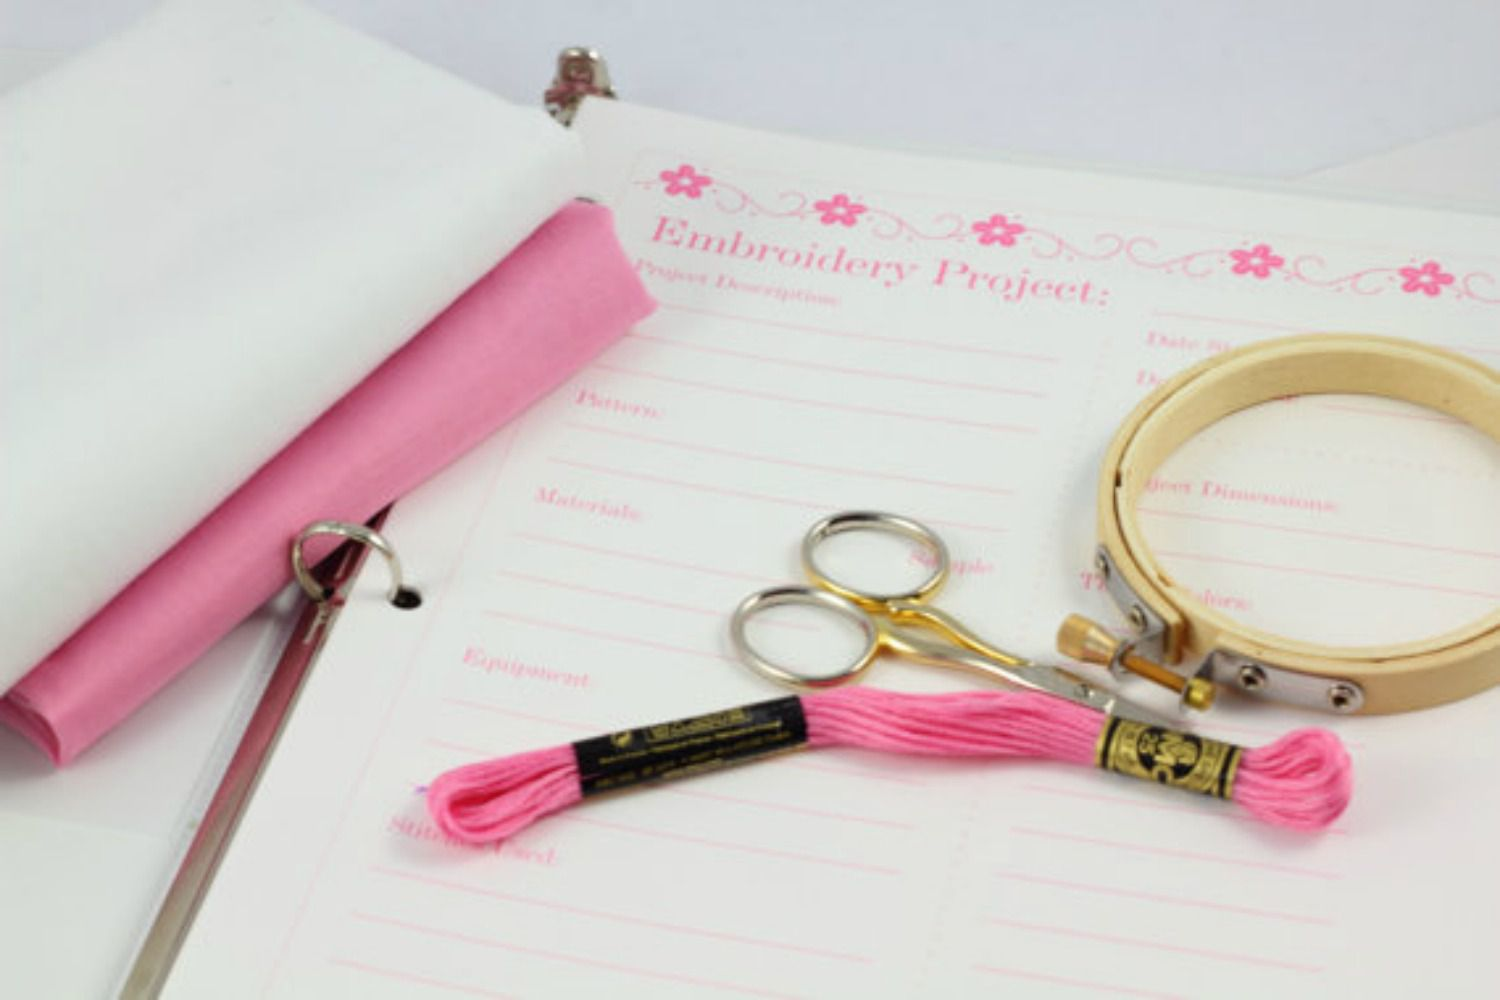 Embroidery project planner